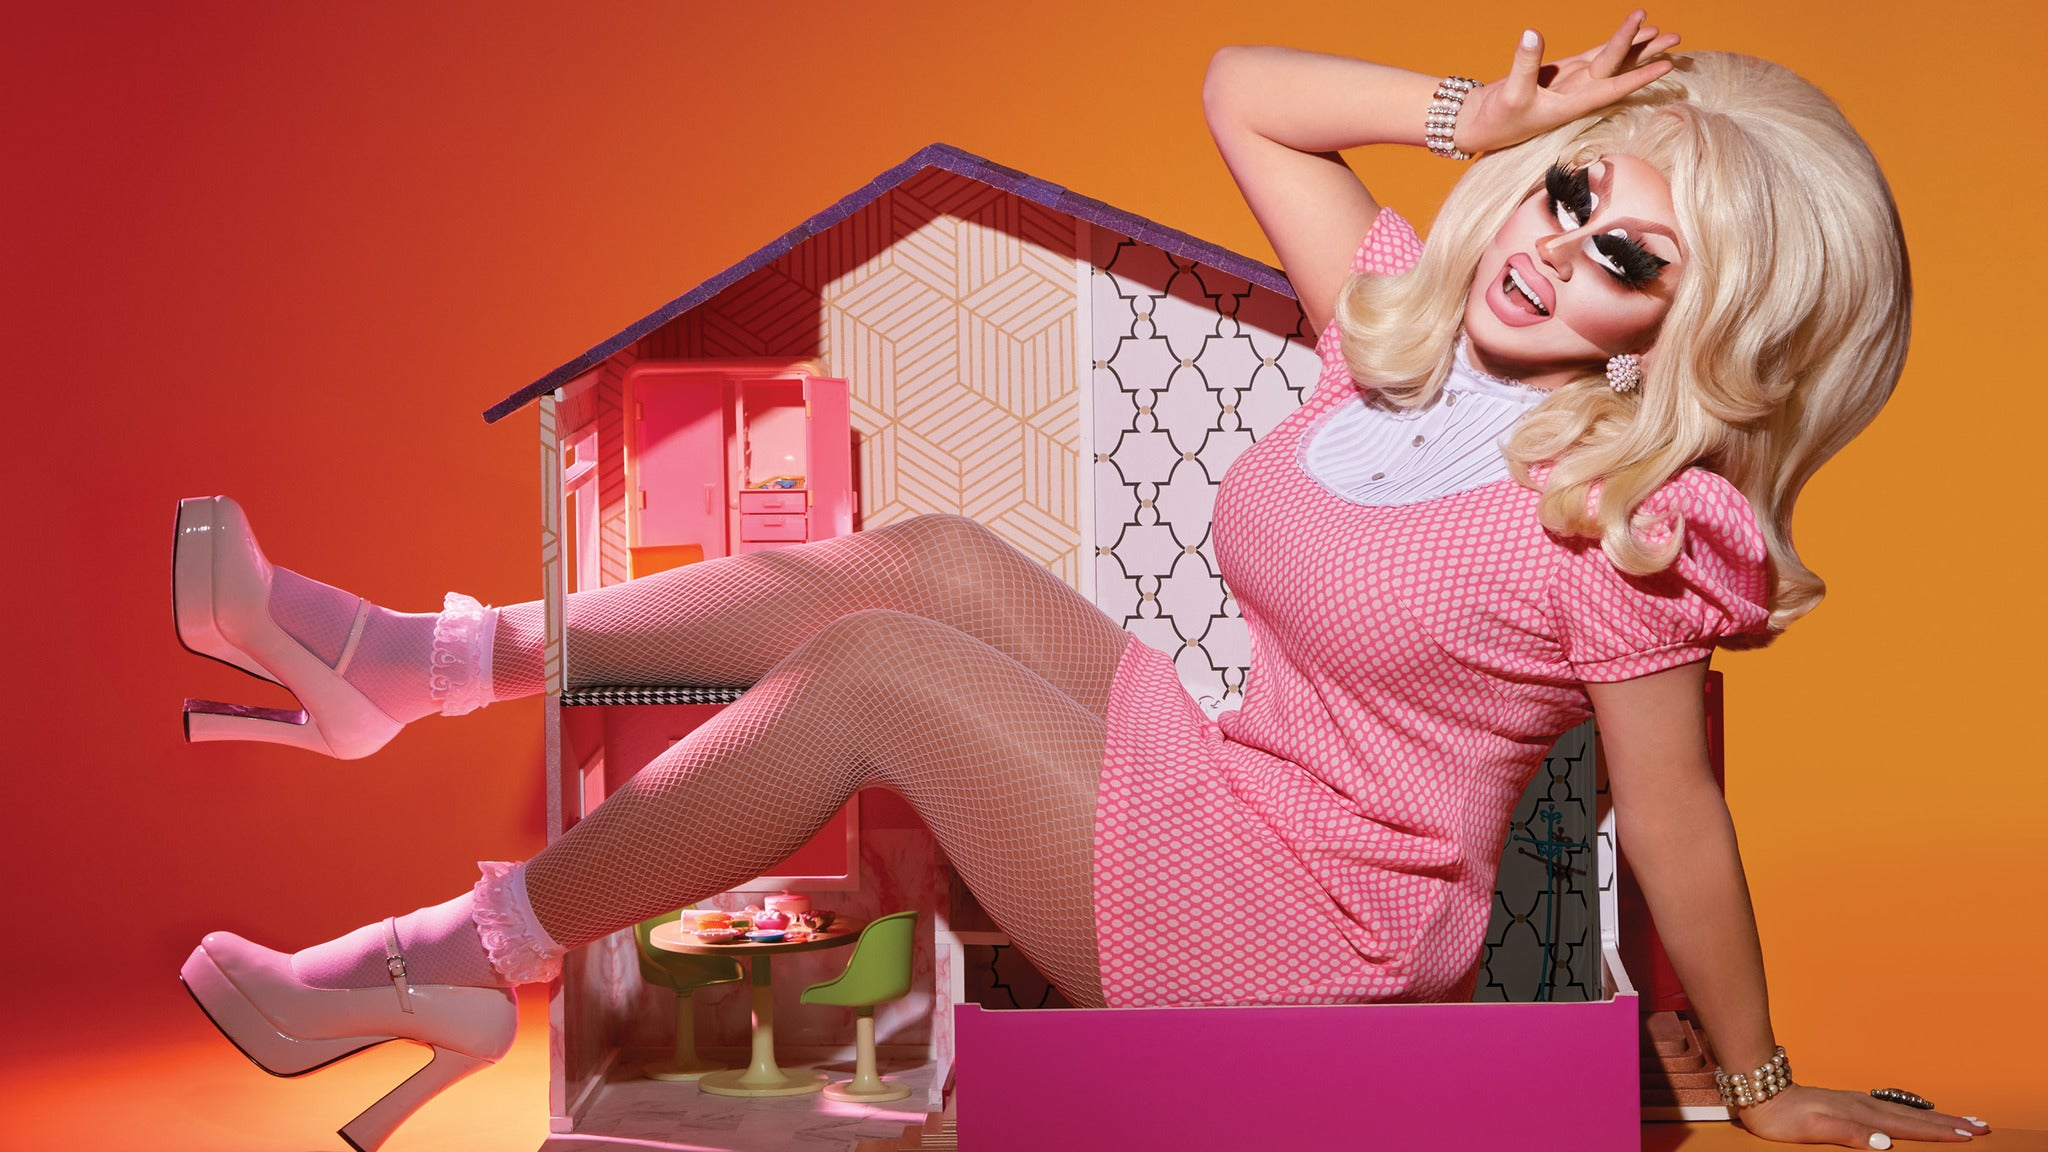 Trixie And Katya Live pre-sale code for early tickets in Brooklyn